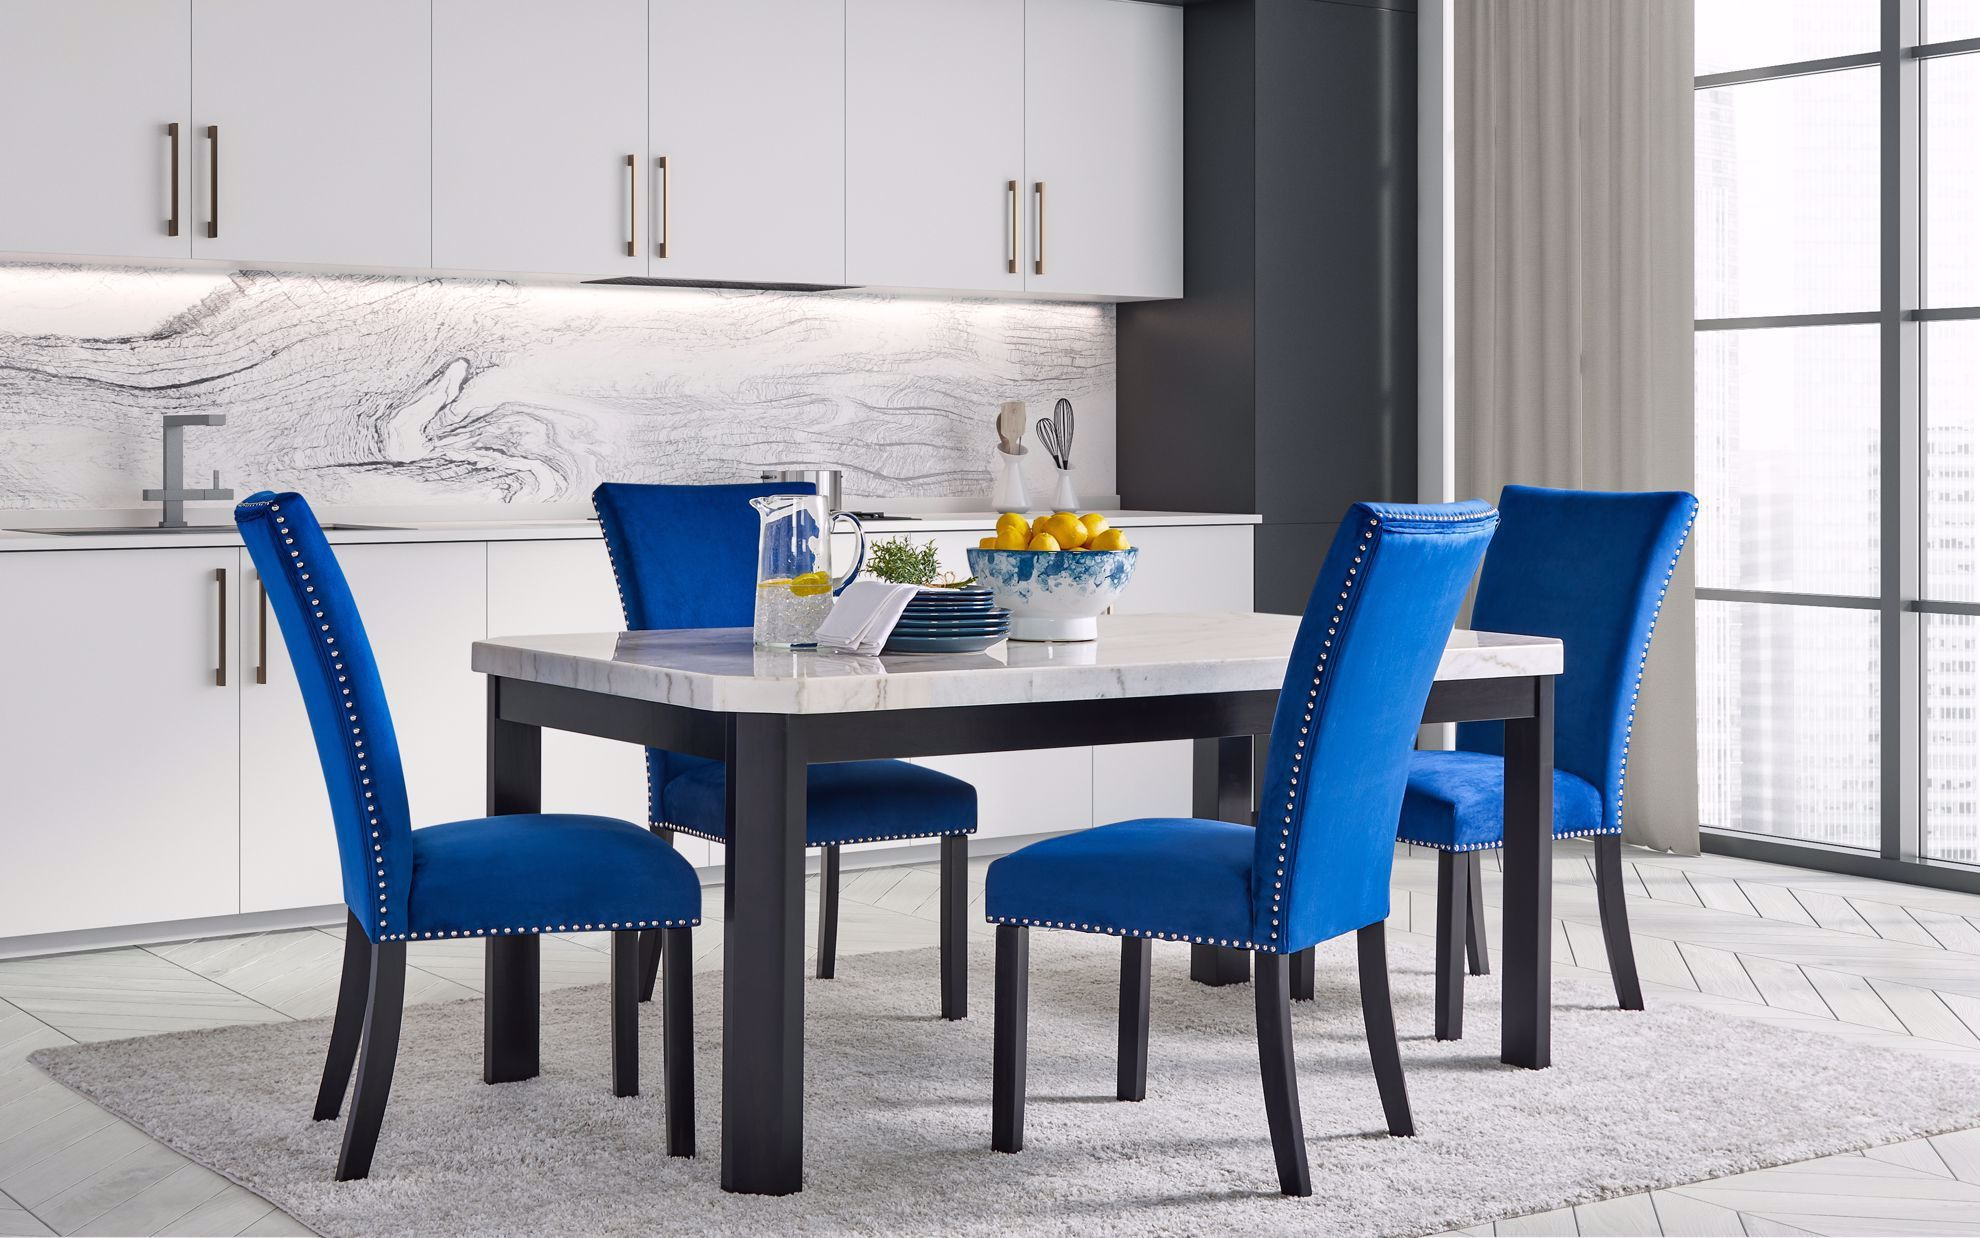 Picture of Francesca White Dining Table with 4 Chairs